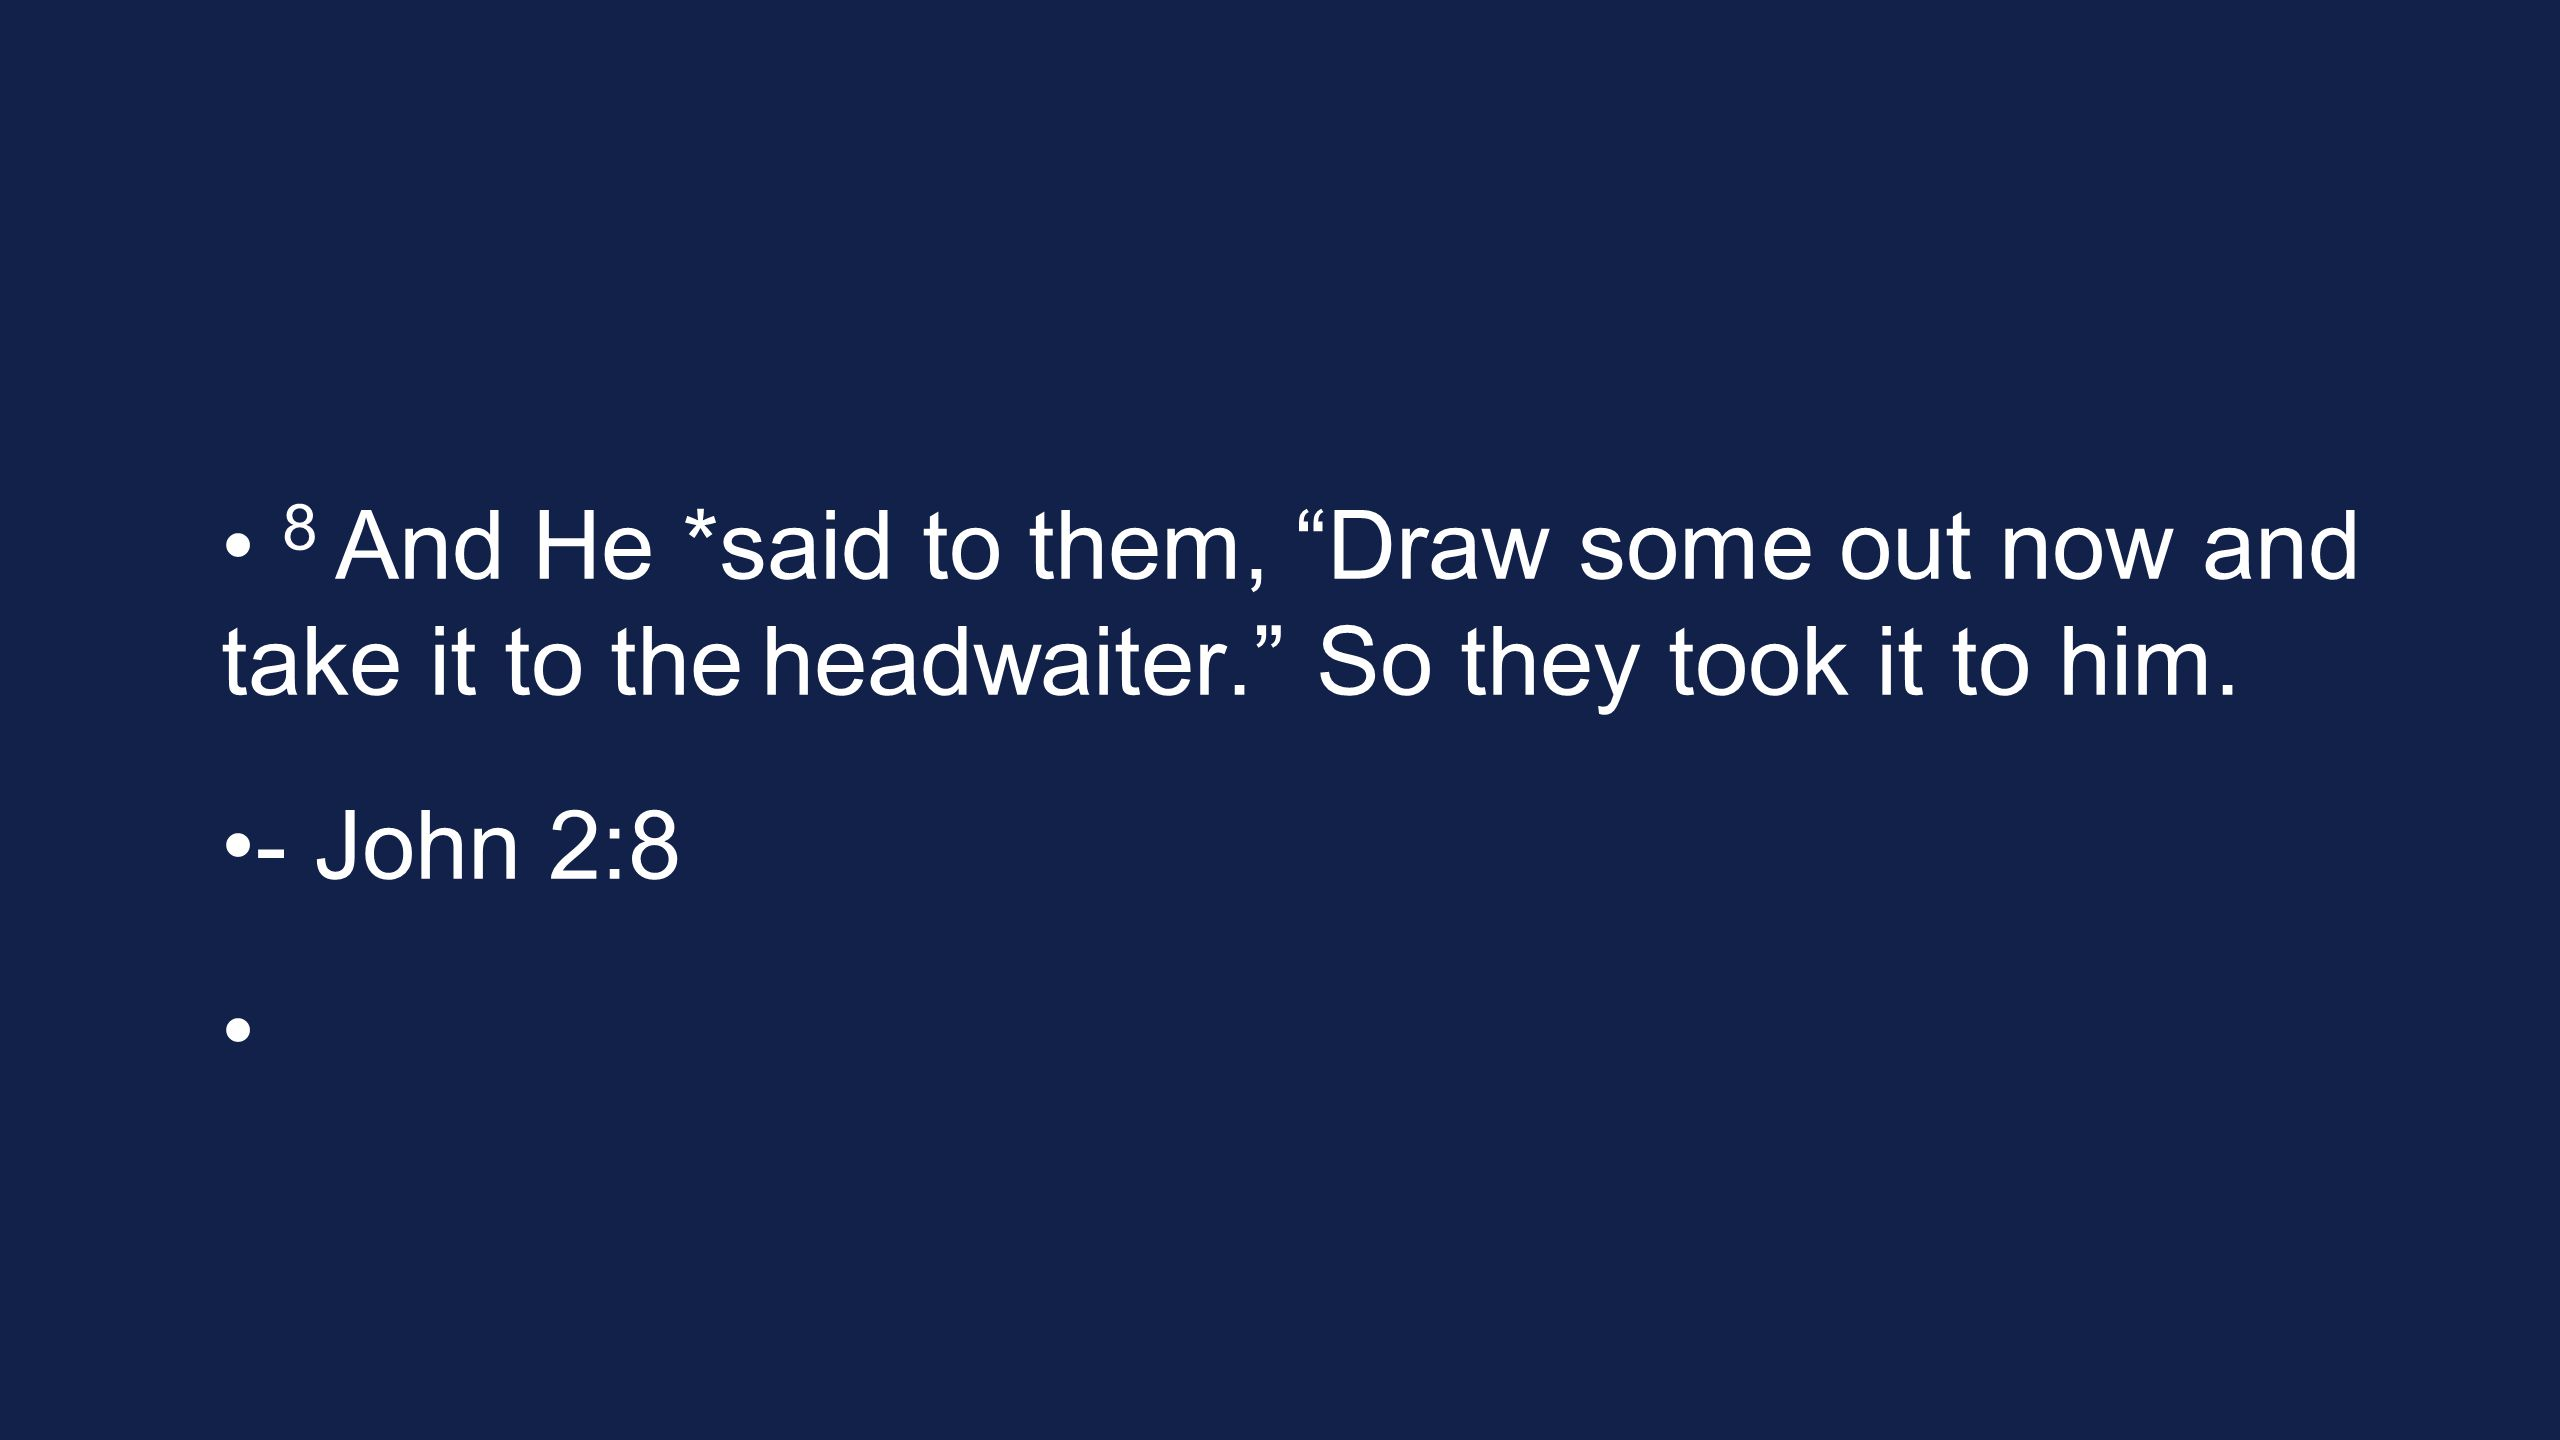 8 And He *said to them, Draw some out now and take it to the headwaiter.